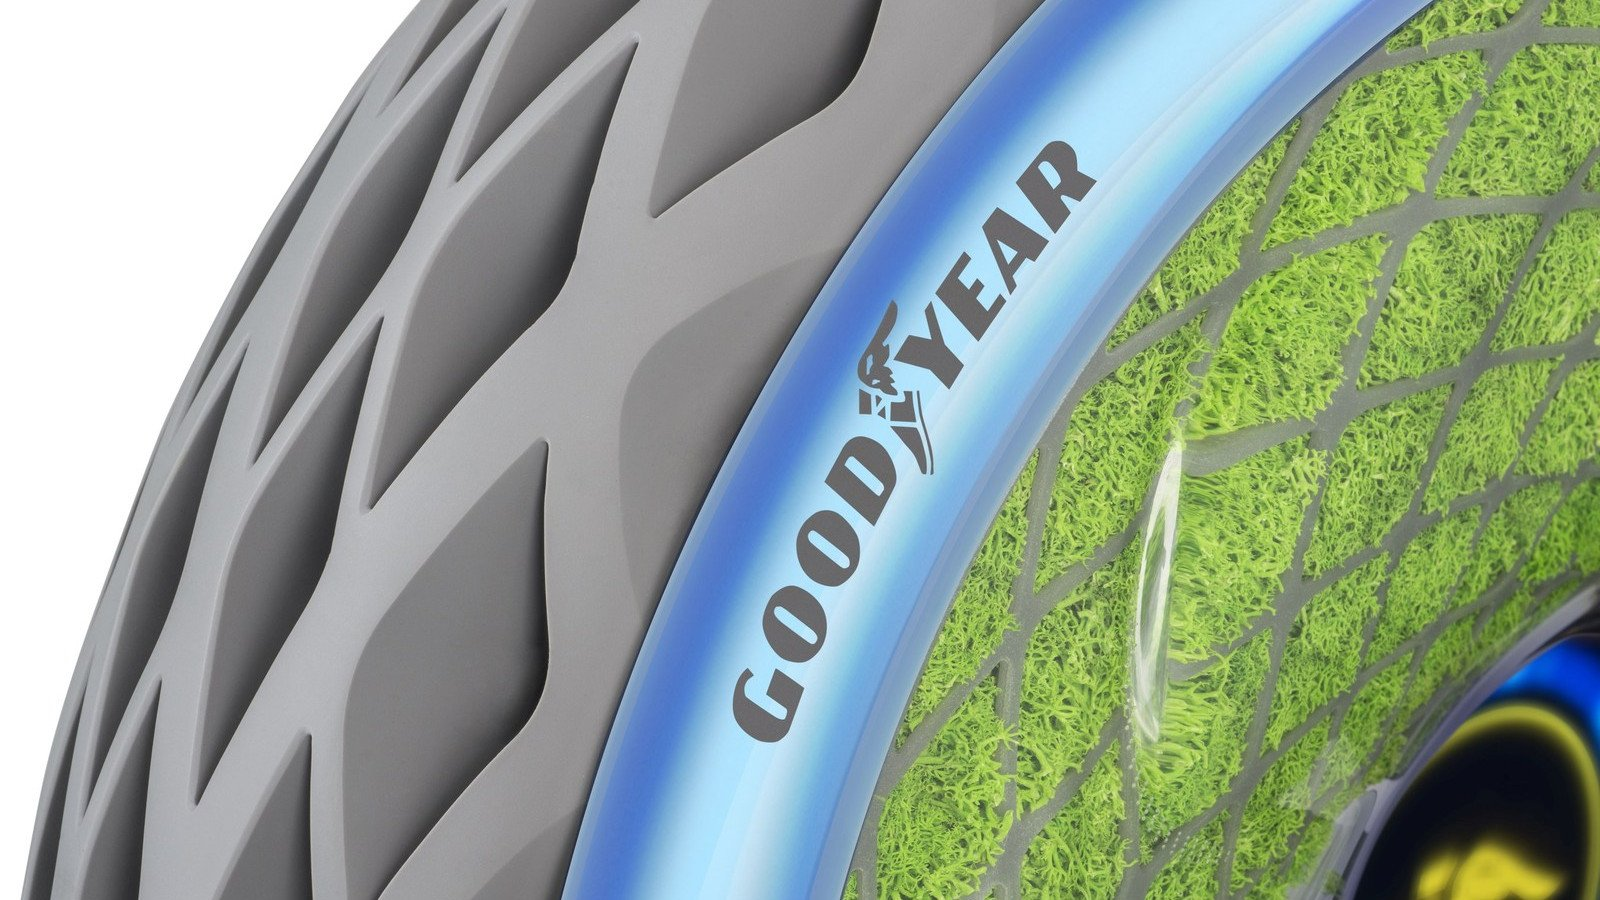 Goodyear Creates Oxygene 3D Printed Concept Tire to Improve Air Quality | All3DP